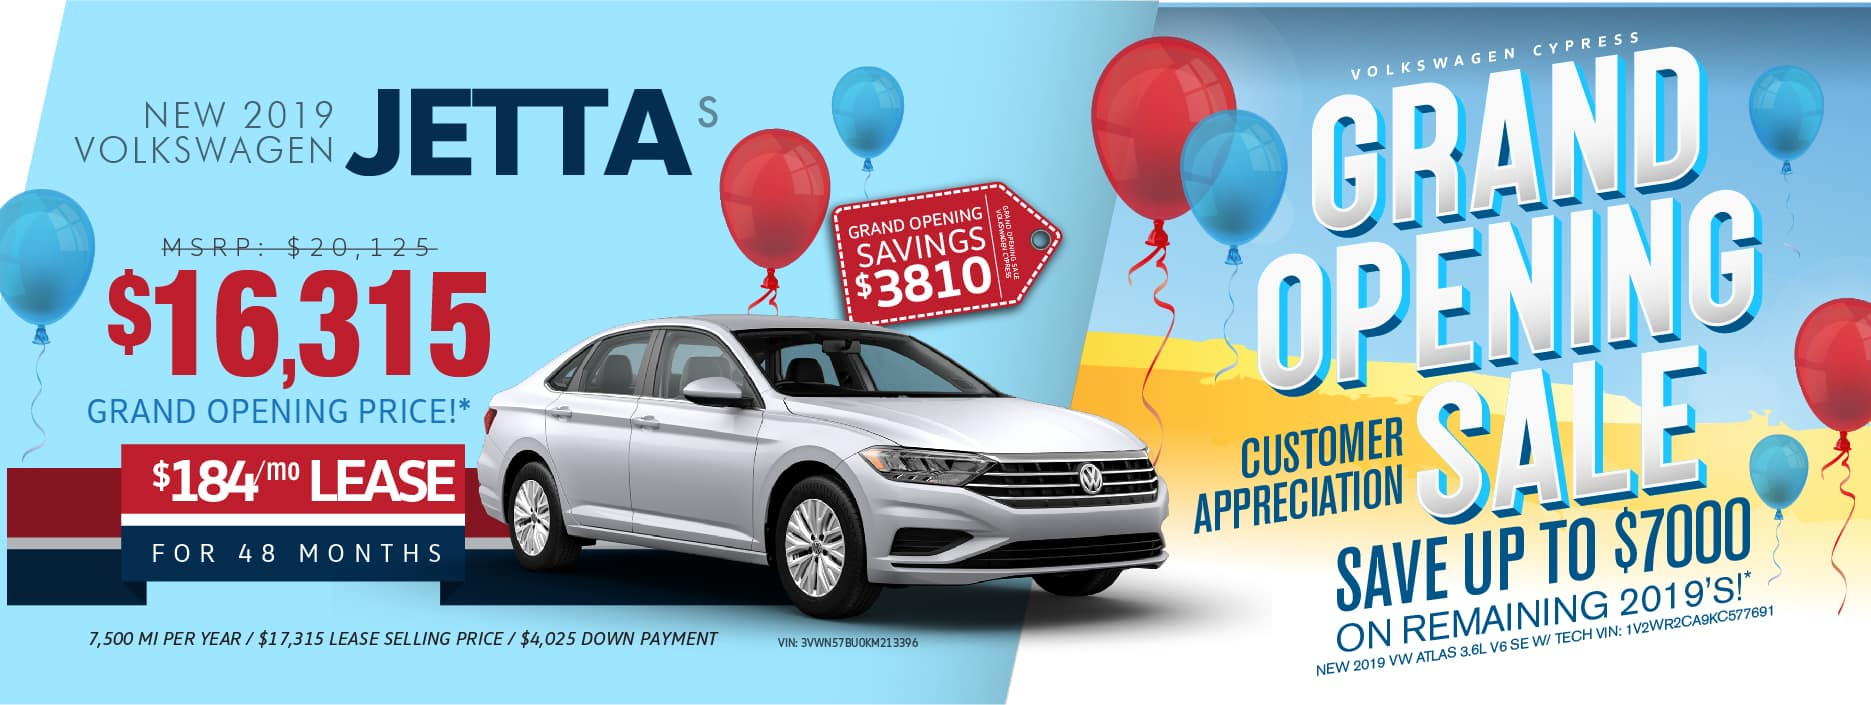 Don't miss our Grand Opening Sale at Volkswagen Cypress